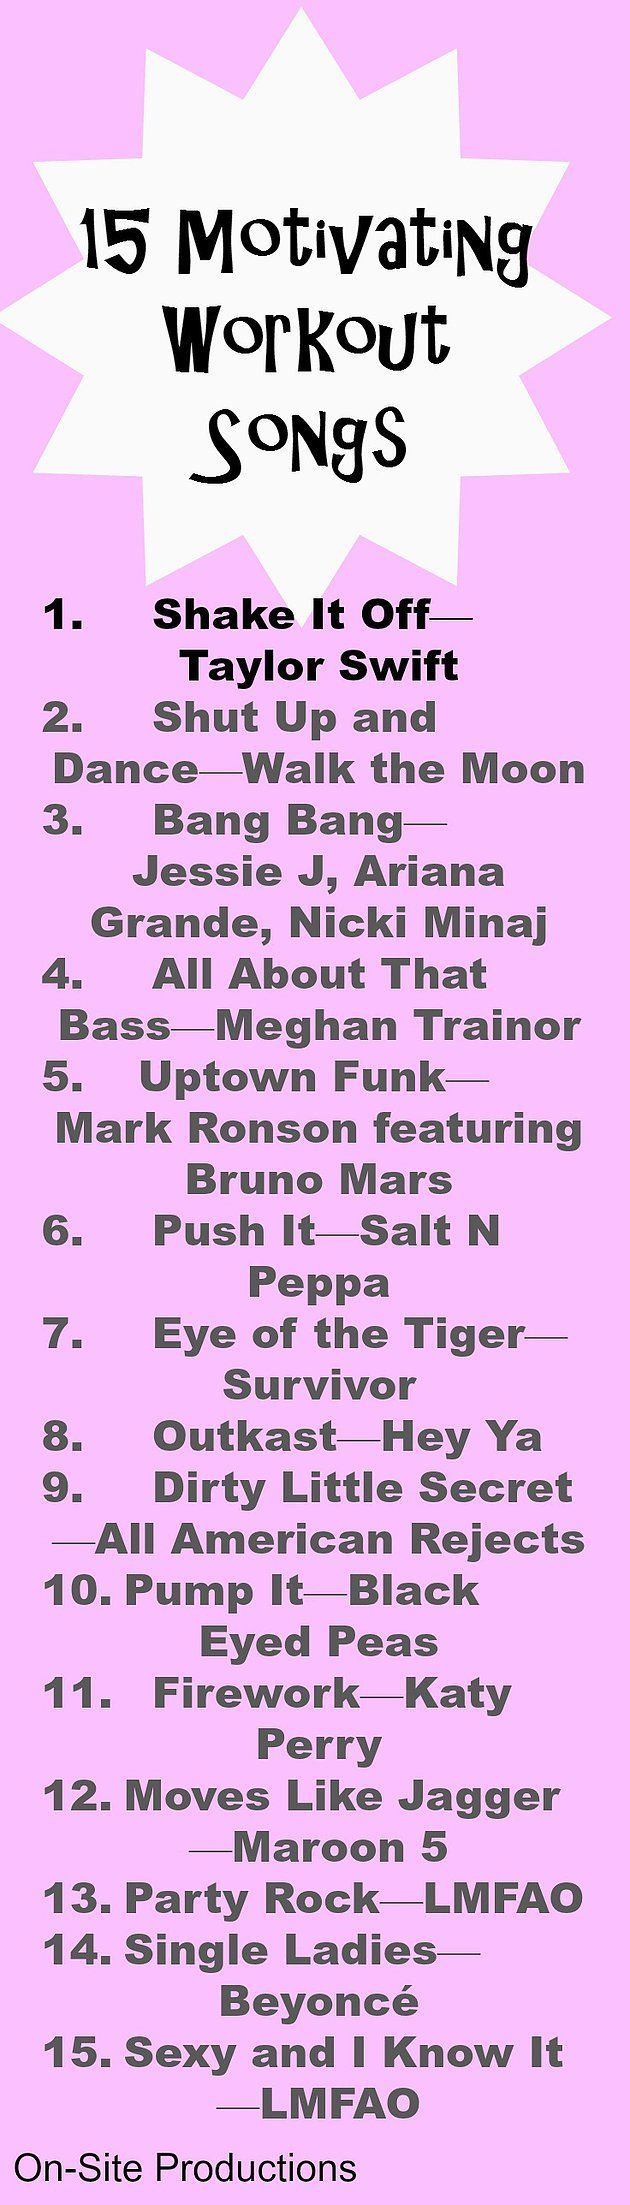 15 motivating workout songs the link to the playlist is included this